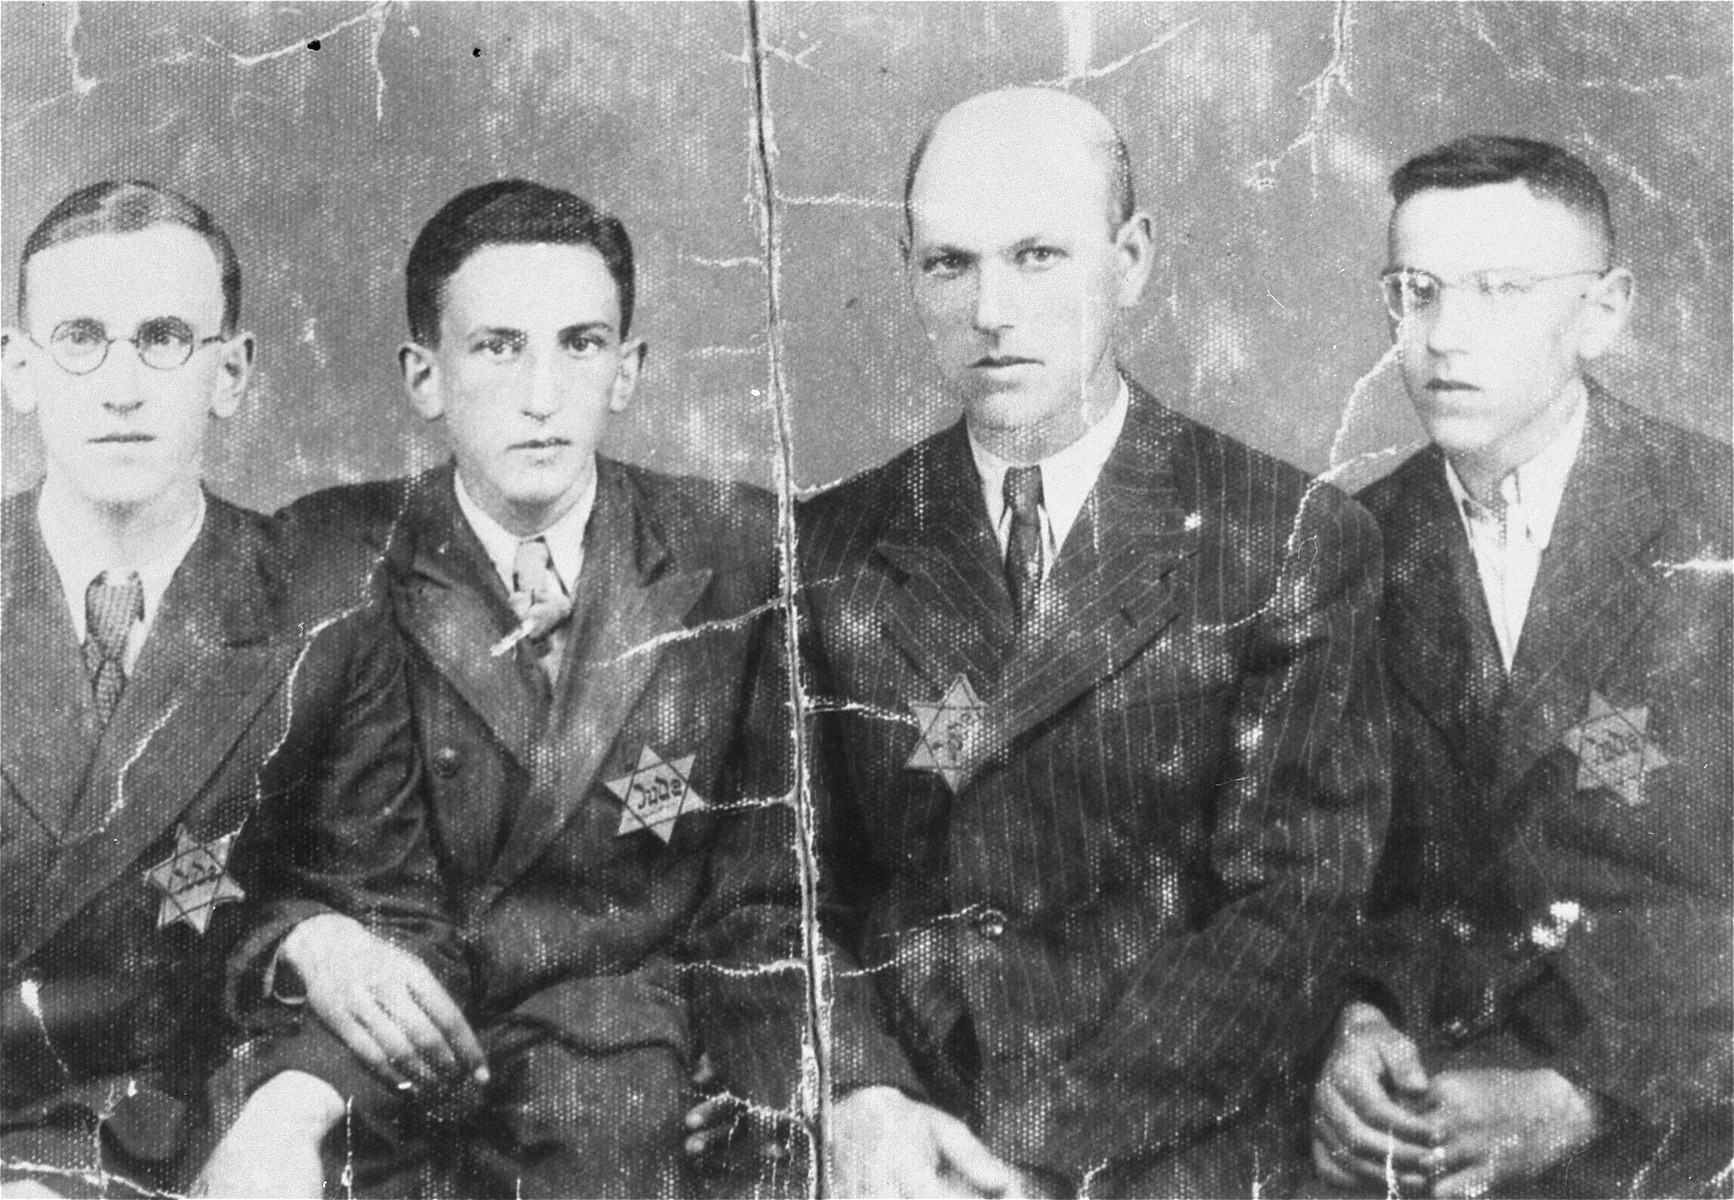 Group portrait of the male members of the Jakubowicz family wearing Jewish badges in the Wielun ghetto.  Pictured are Mr. Jakubowicz (second from the right) with his three sons (left to right), Jakub, Moisze and Henry.  All four survived the war.